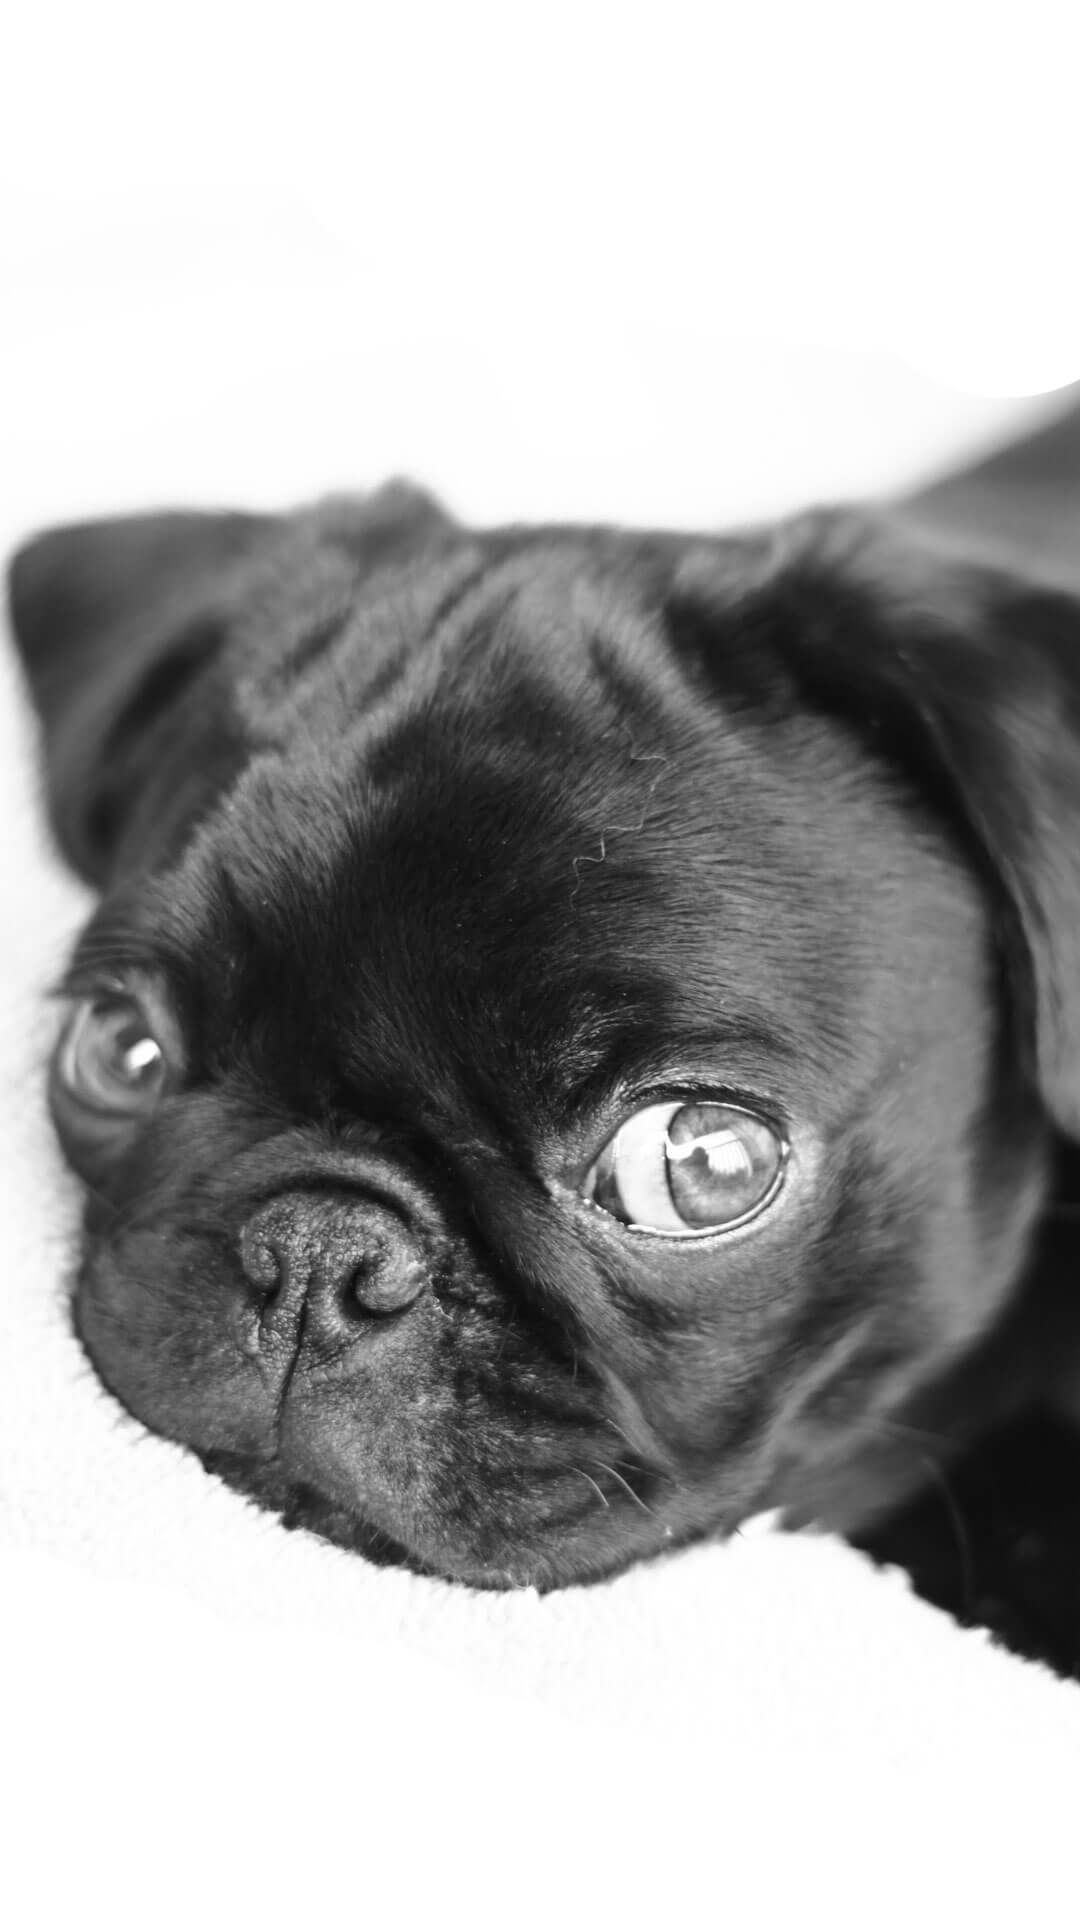 1920x1080 Pug Dog Pet Animal Cute Puppy Wallpaper